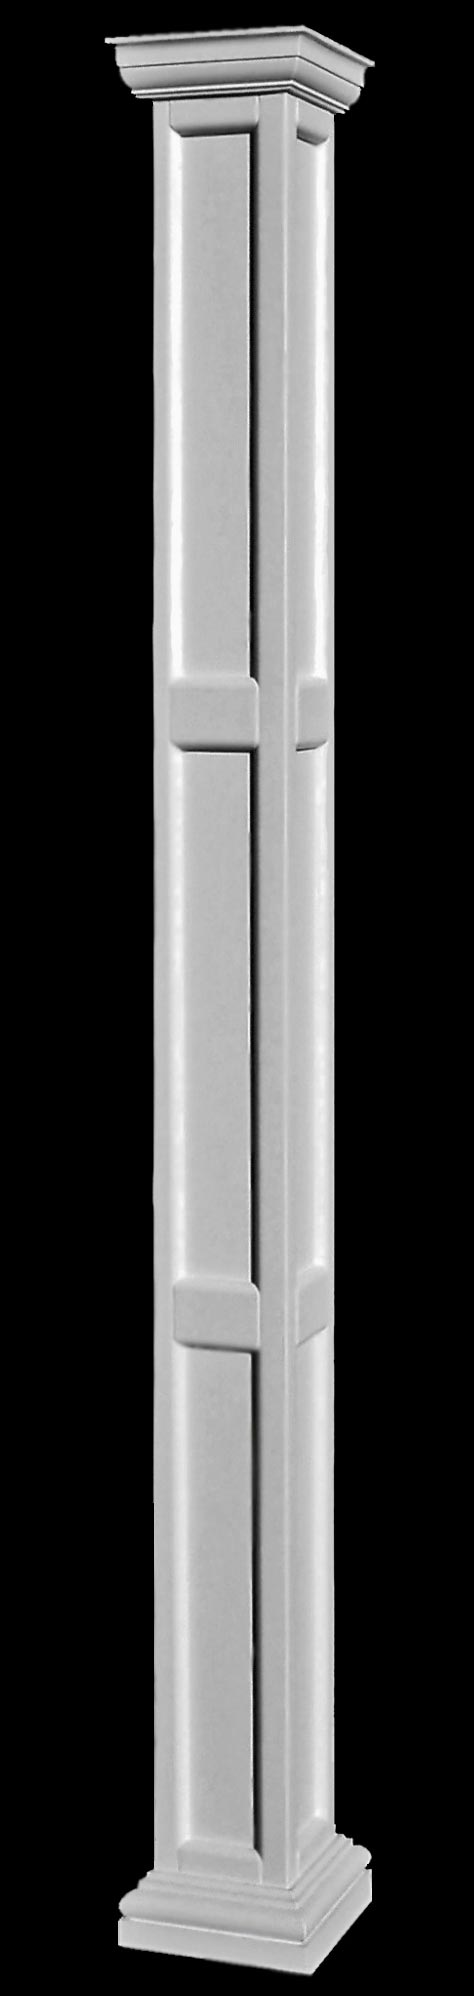 Square recessed panel fiberglass columns for Fiberglass architectural columns